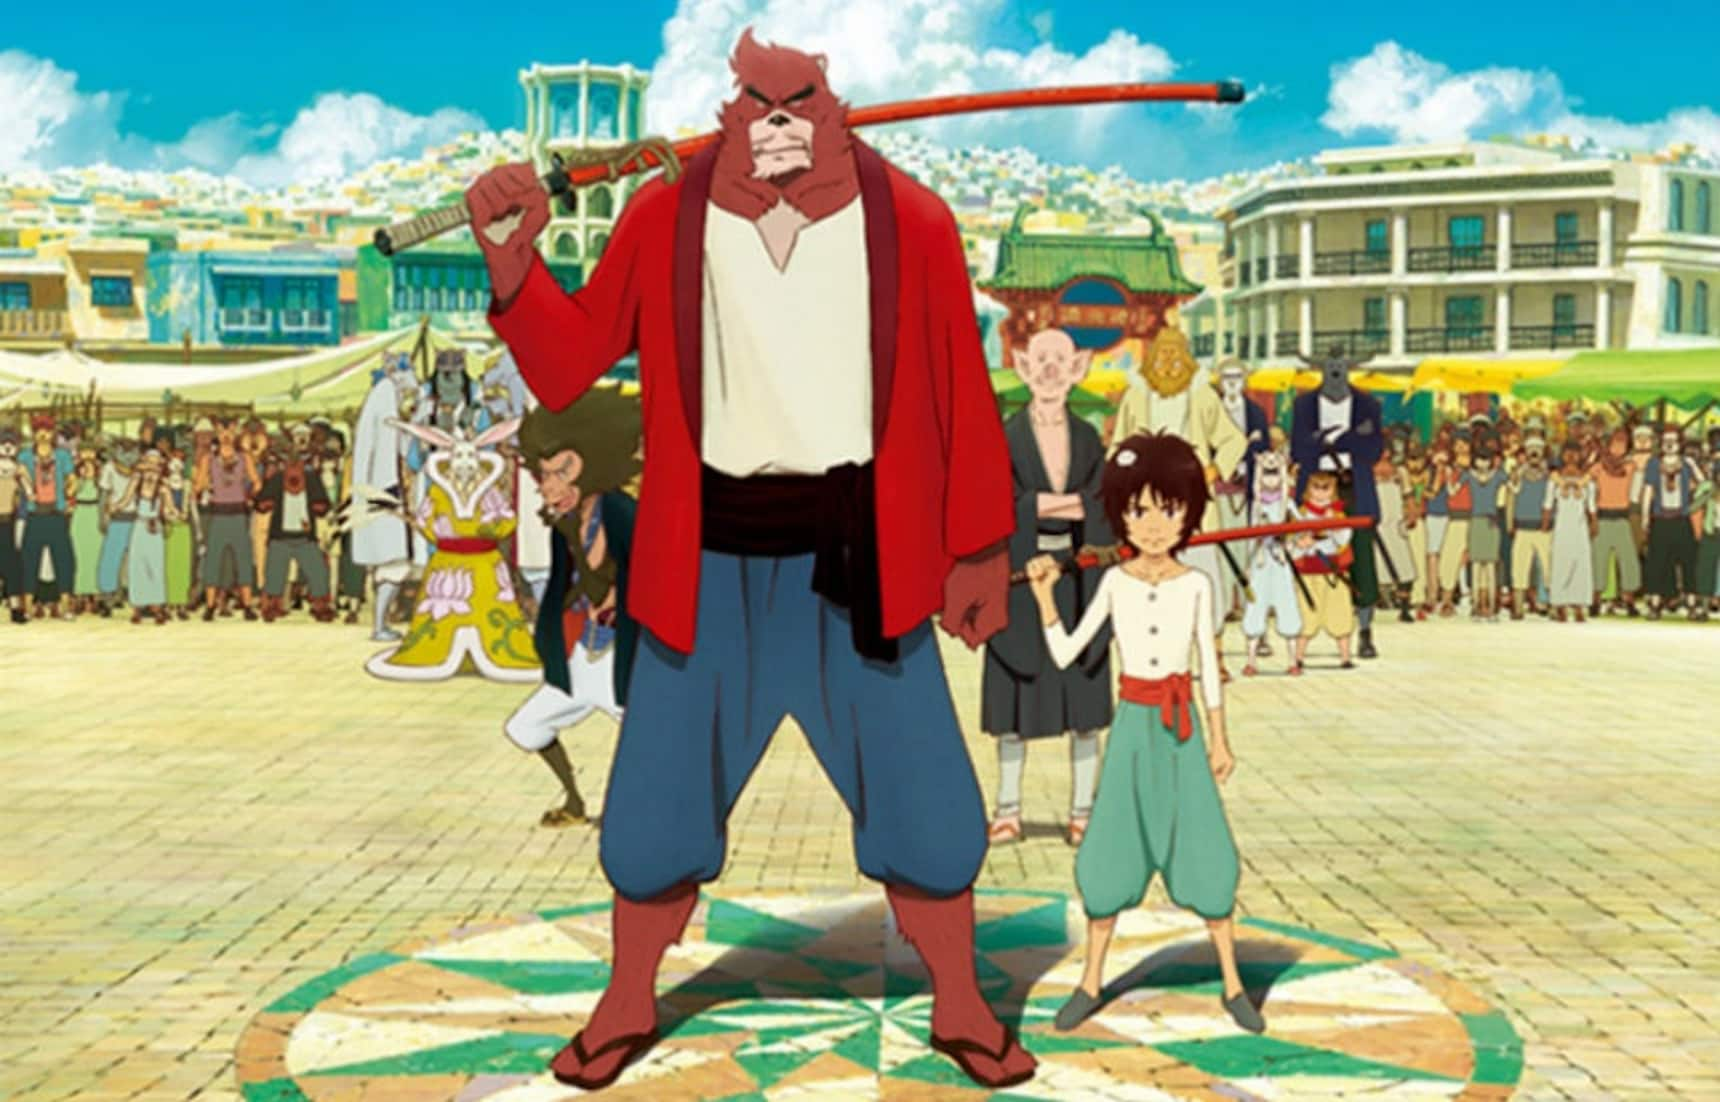 'Summer Wars' Director Announces Upcoming Film